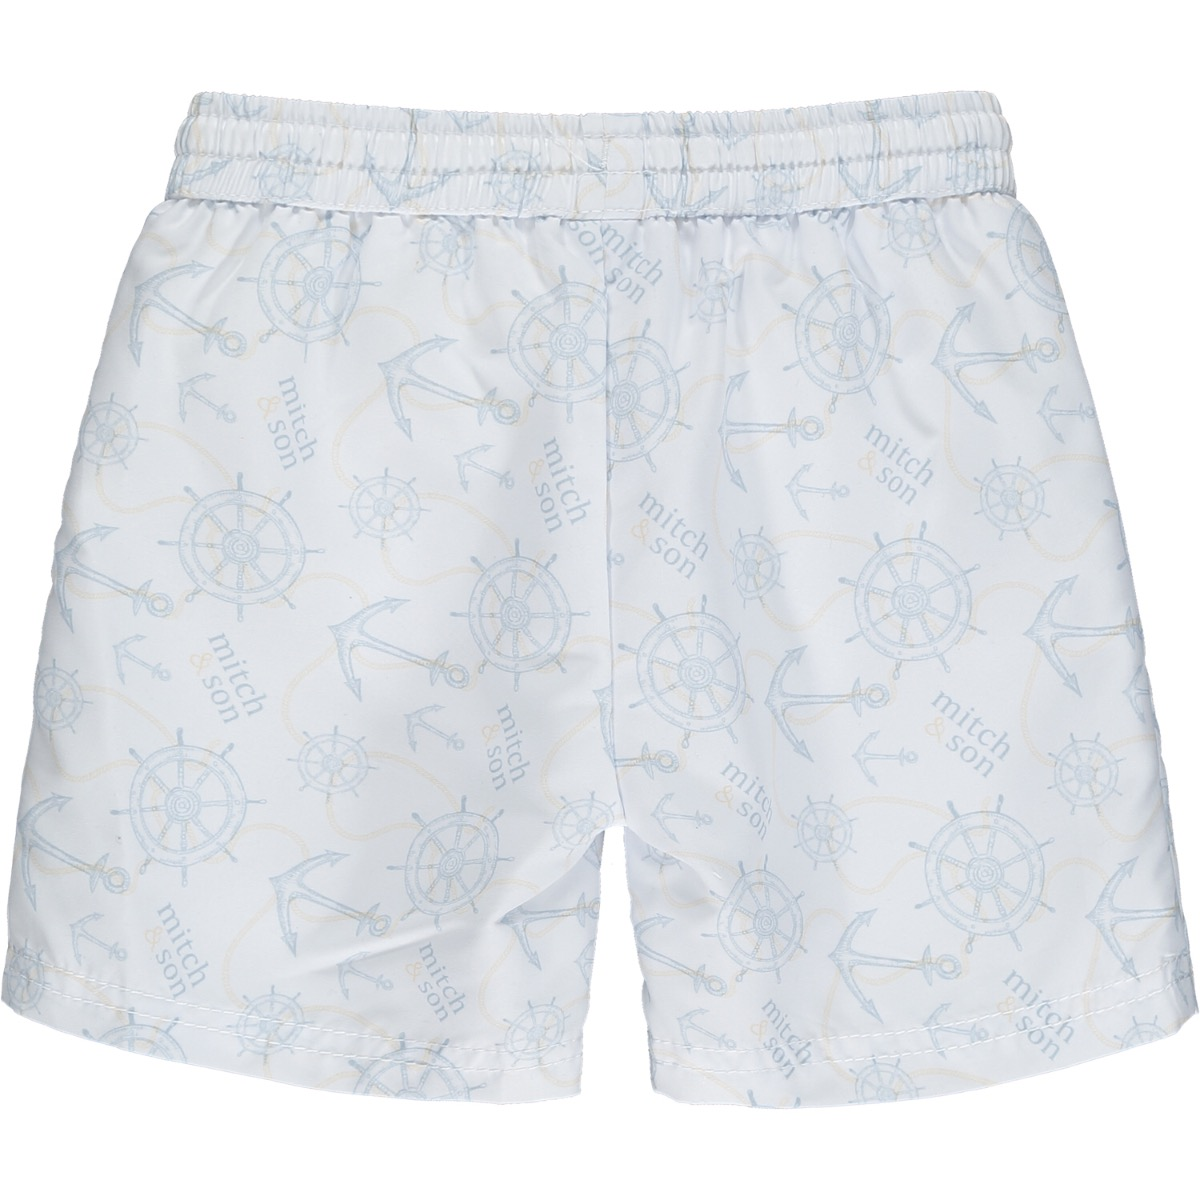 Mitch & Son Bothwell Swimming Shorts MS21115